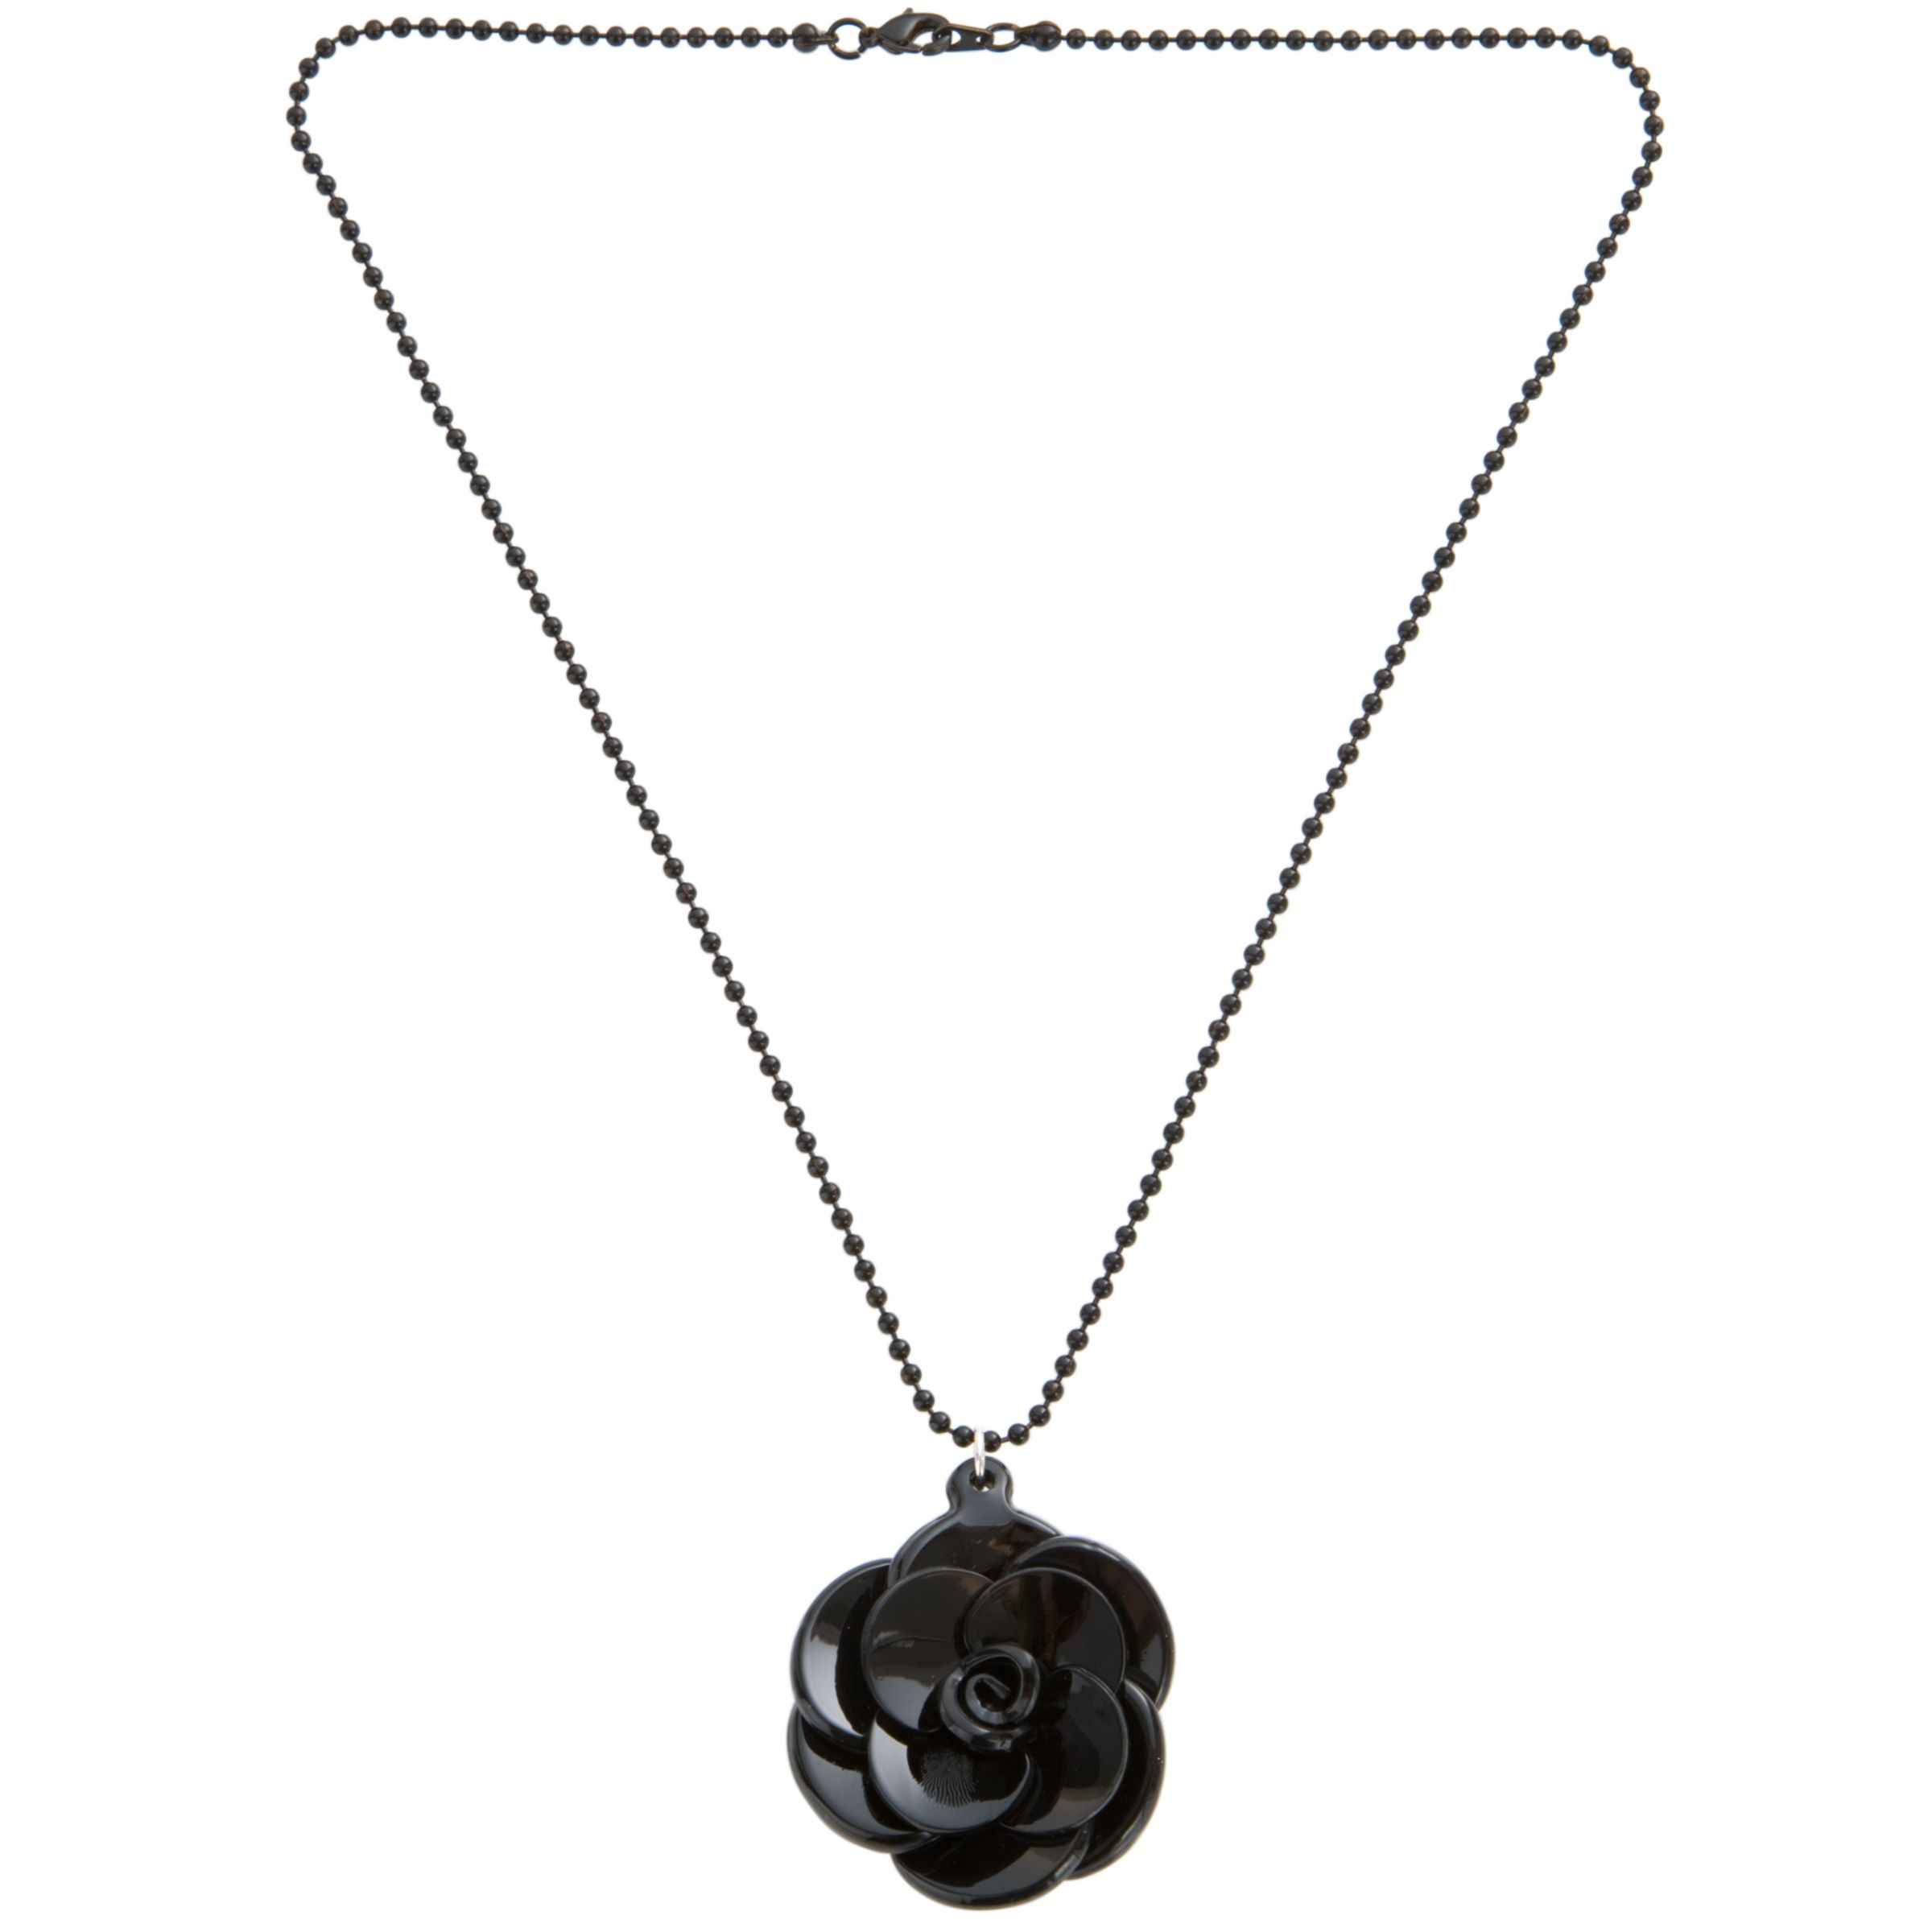 Big Baby Small Rosette Black Flower Pendant Necklace